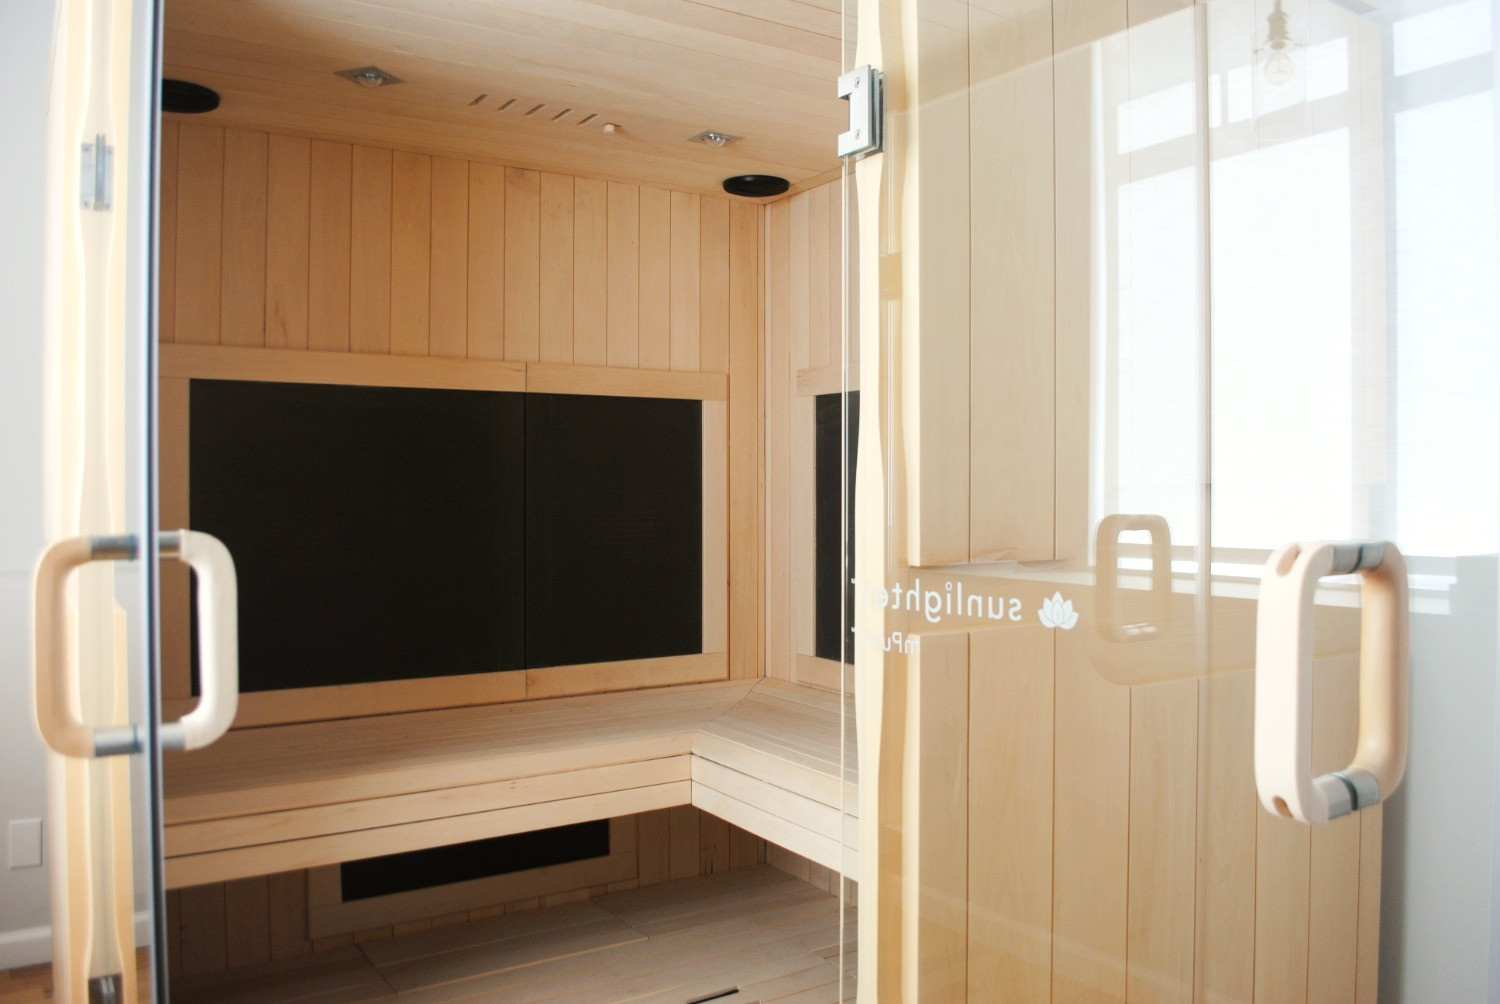 Optimize your health with a visit to our Infrared Sauna